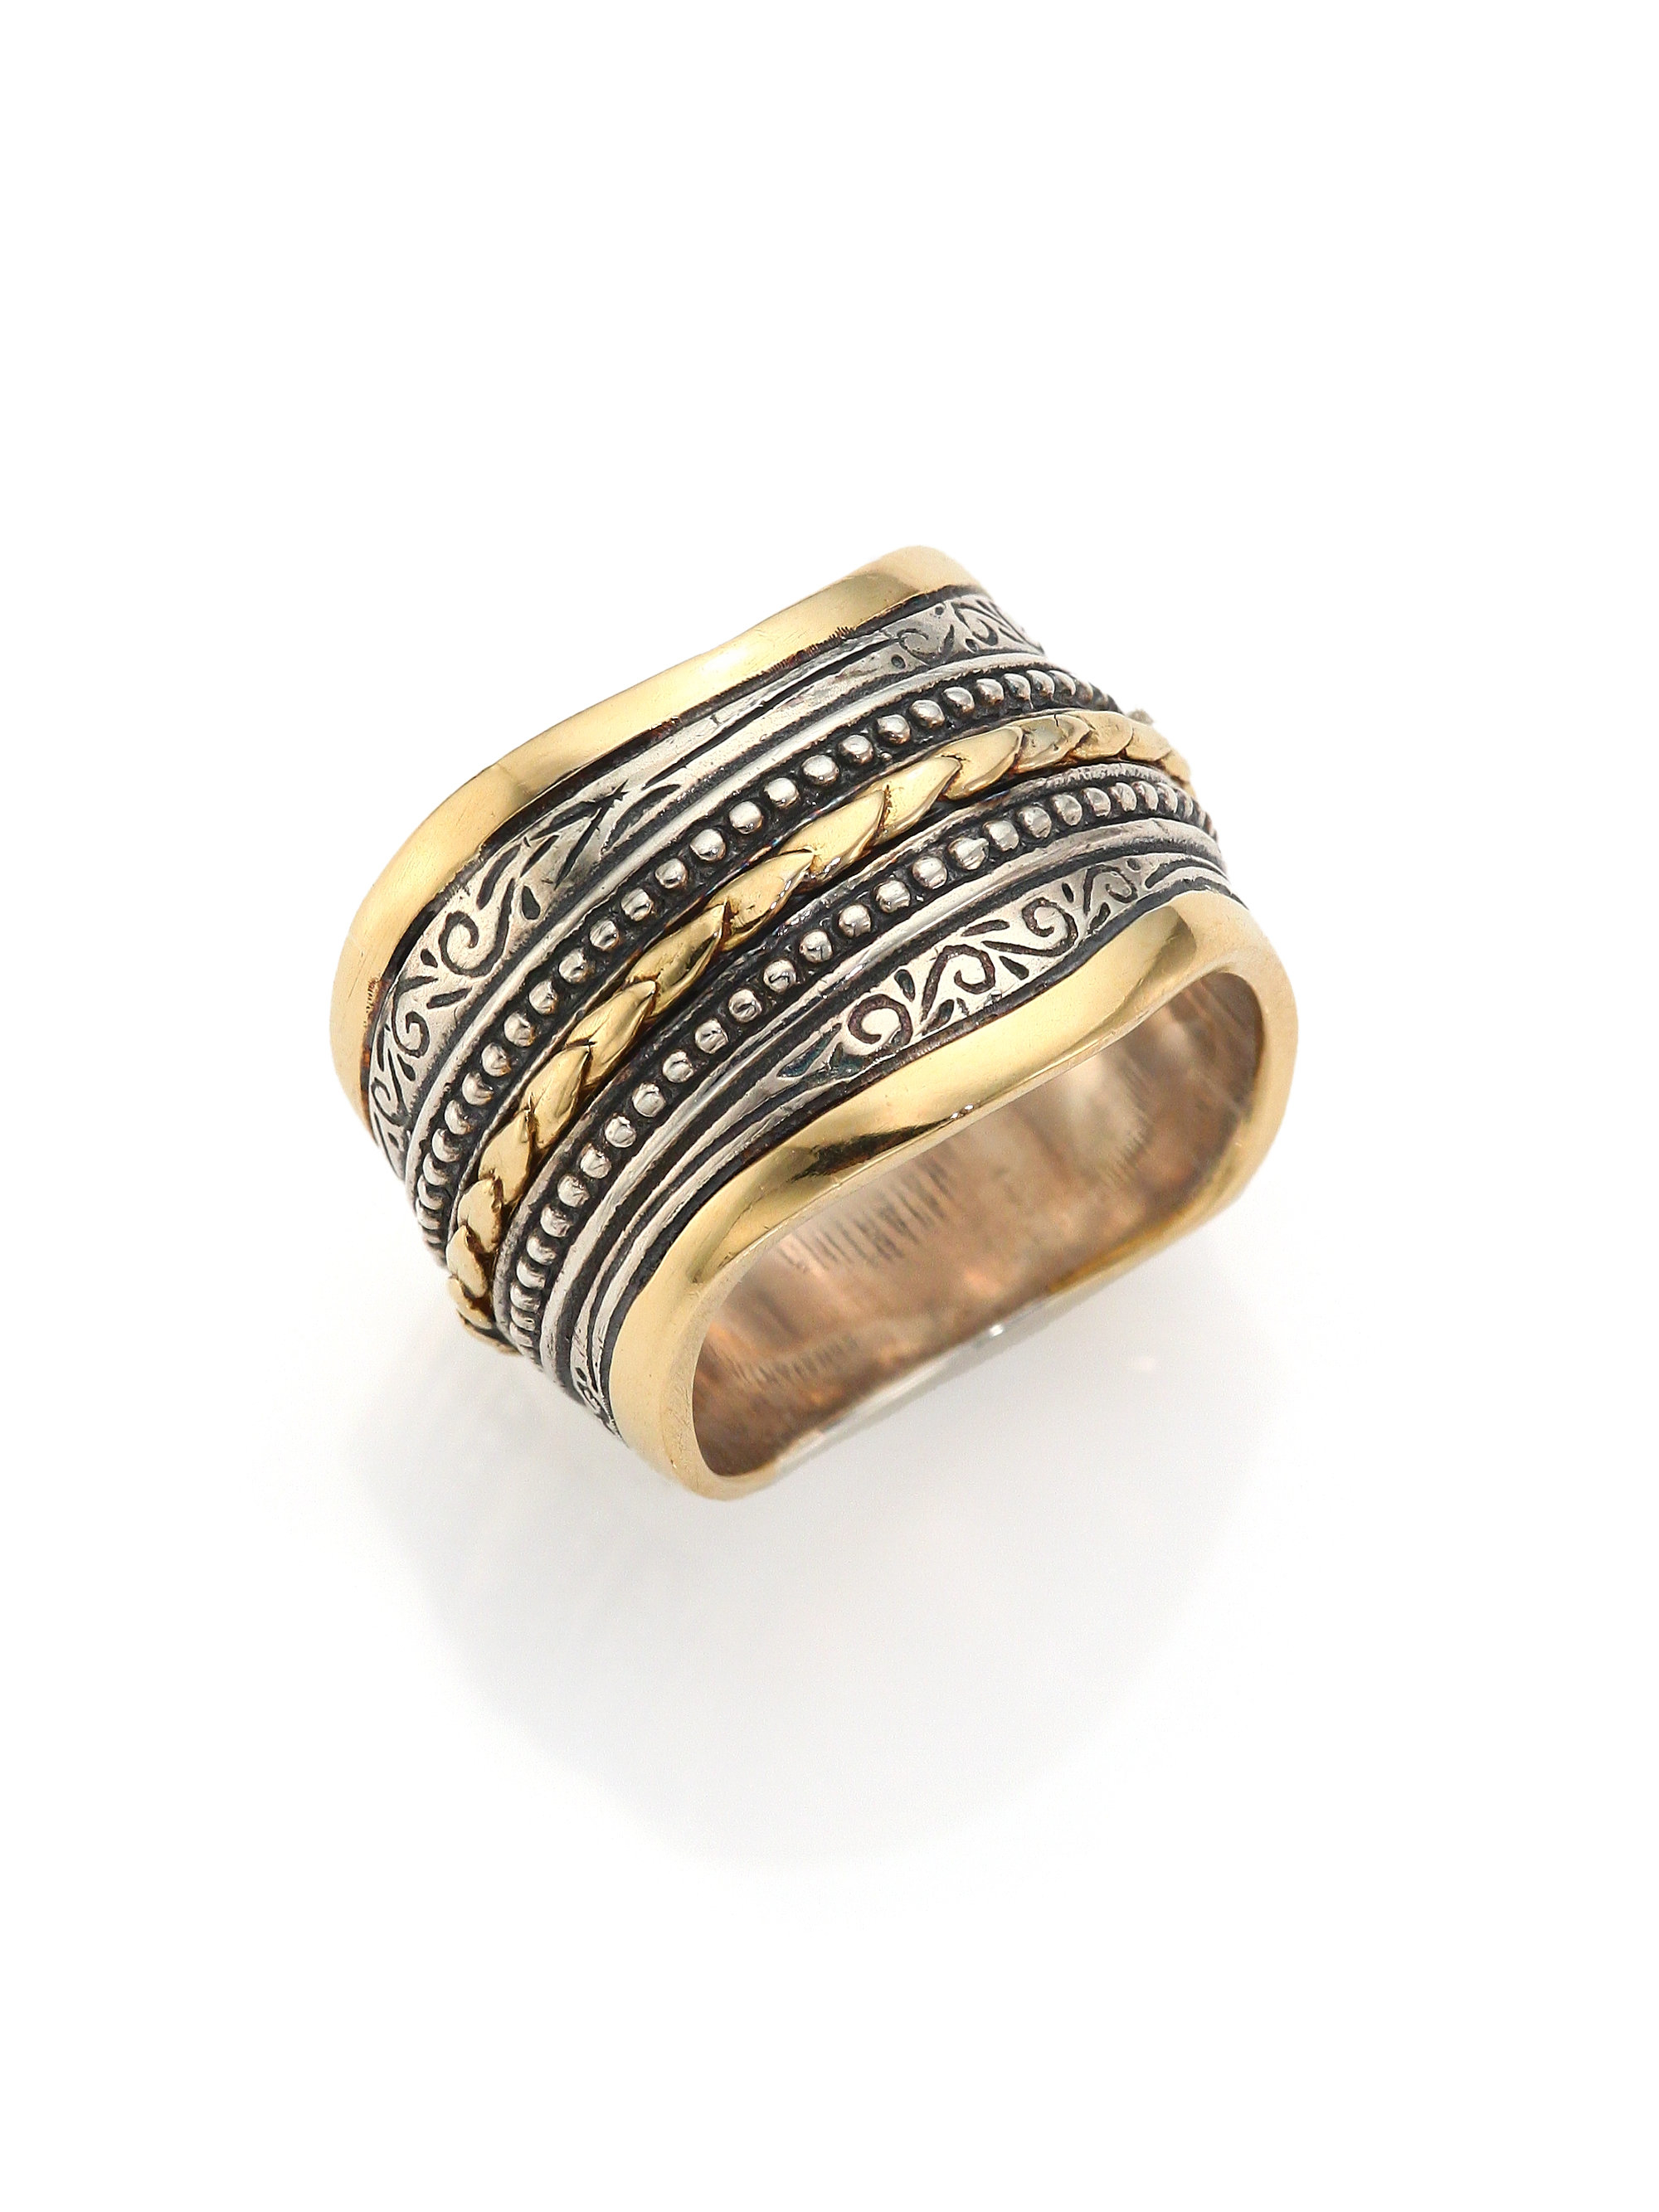 konstantino hebe 18k yellow gold sterling silver ring in